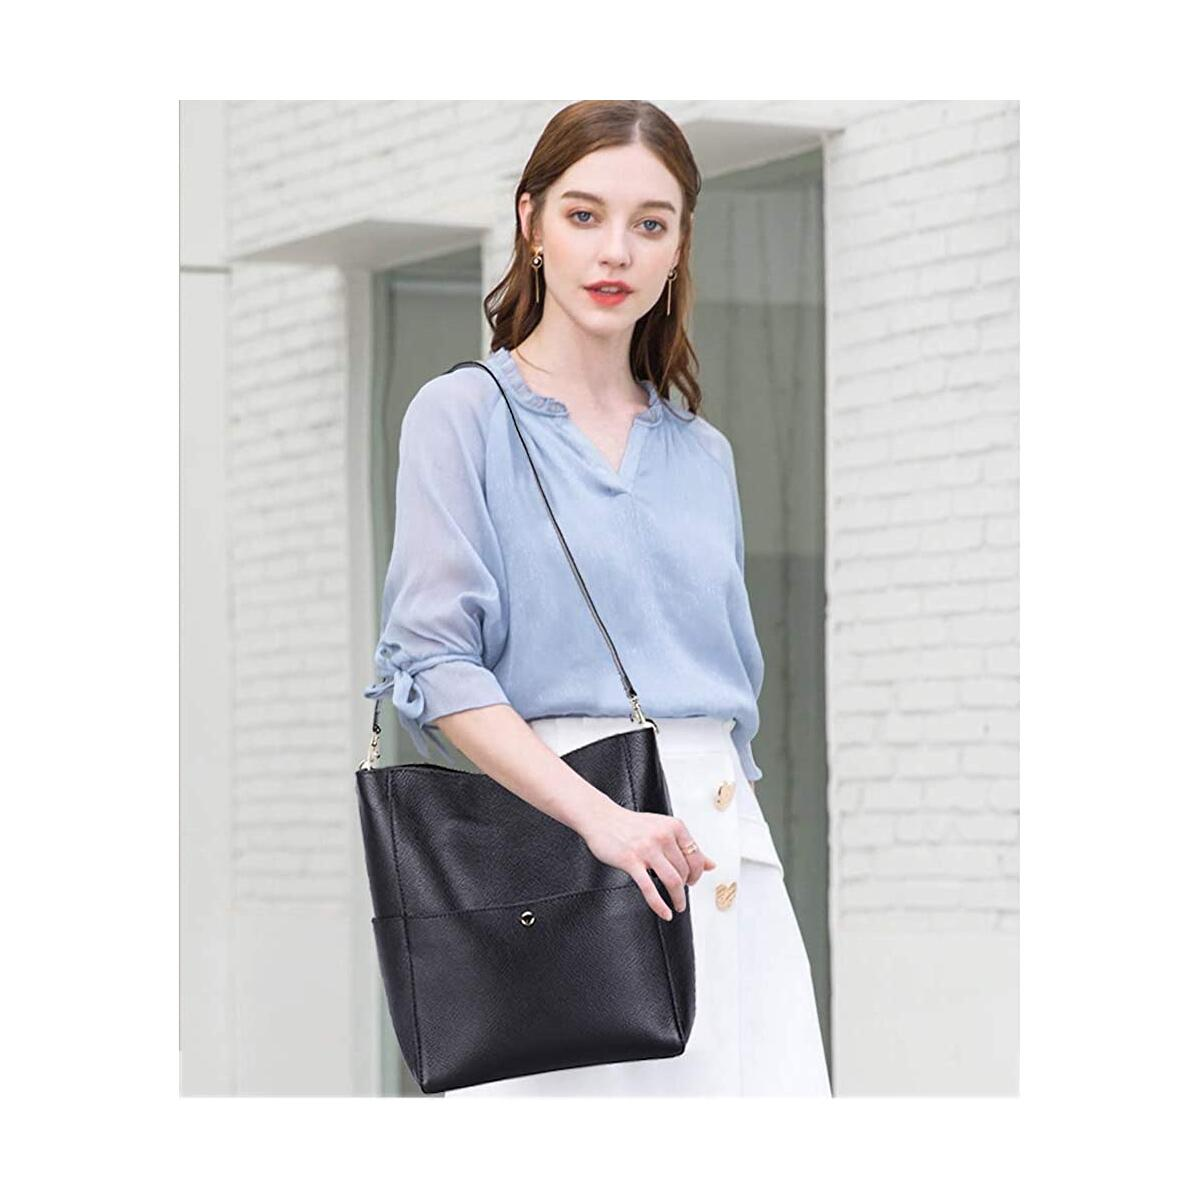 Genuine Leather Bucket Tote Bag for Women Purses and Handbags Hobo Cross Body Bags with Adjustable Strap